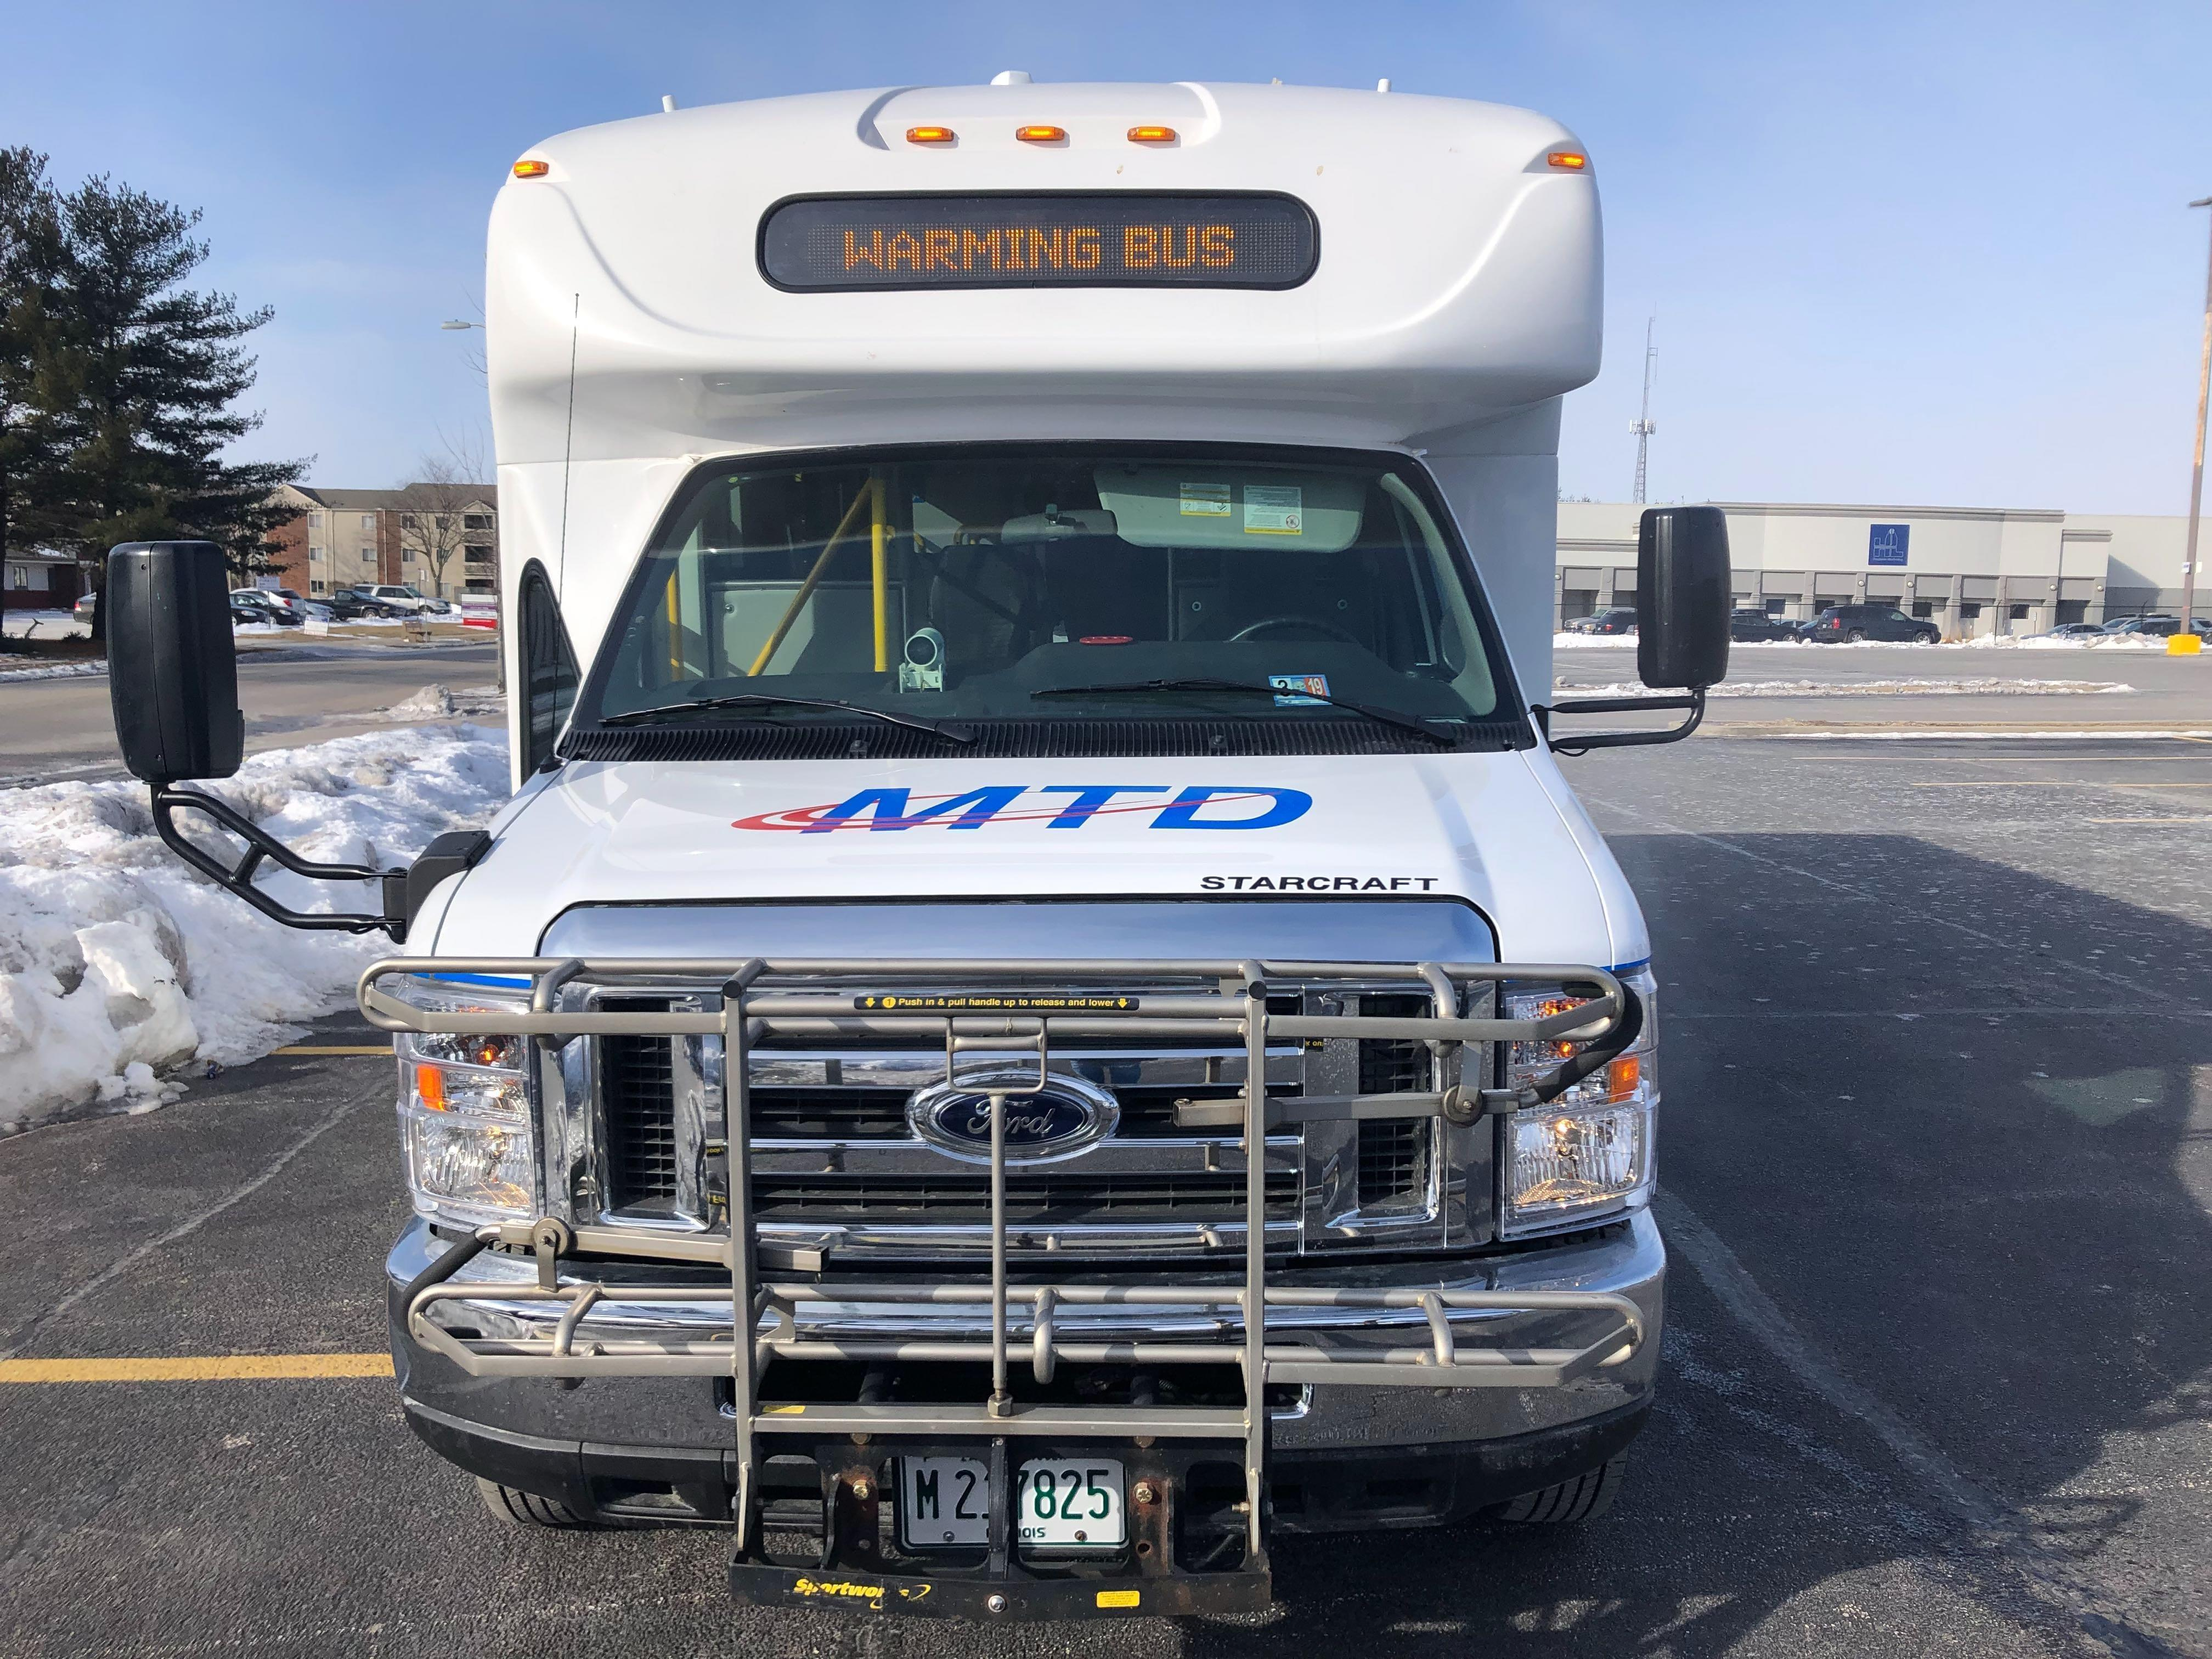 Mtd Warming Bus Offers Shelter To Commuters During Extreme